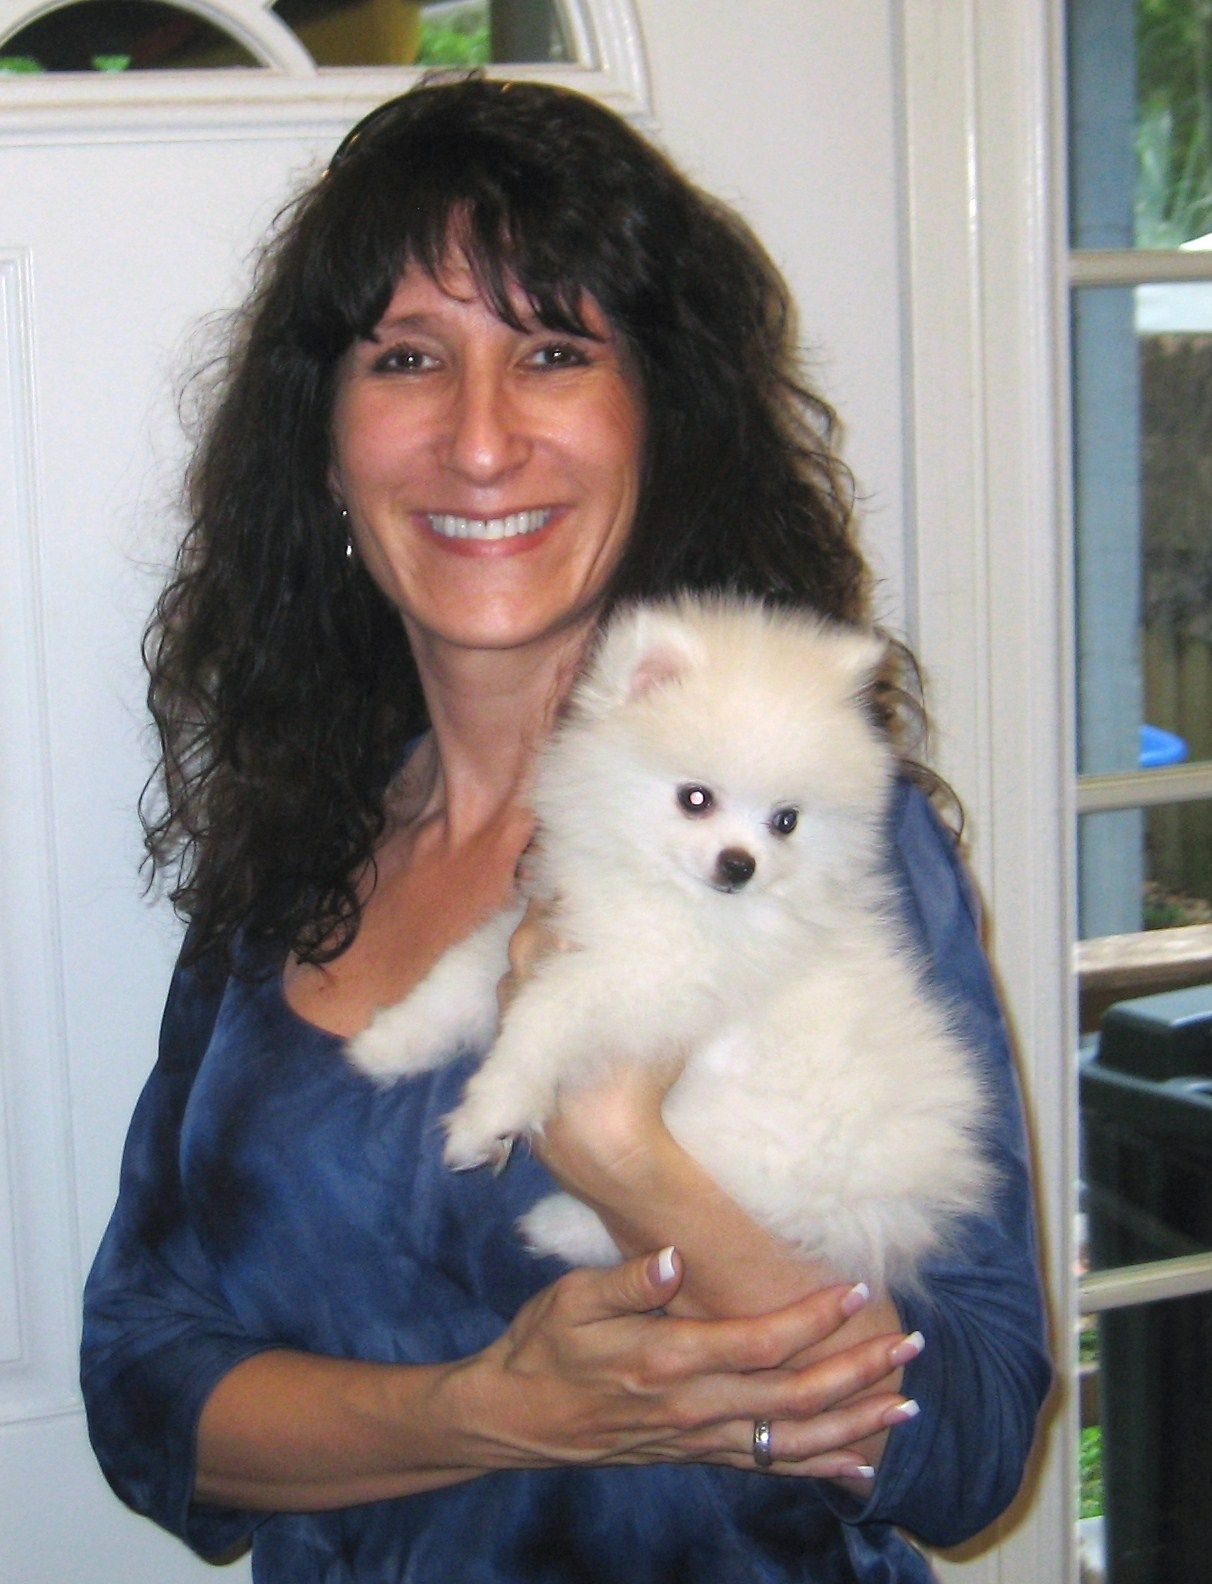 Teacup Pomeranian Puppies For Sale In Tampa Florida Poofy Poochies Pomeranian Puppy For Sale Pomeranian Puppy Teacup Teacup Pomeranian Full Grown